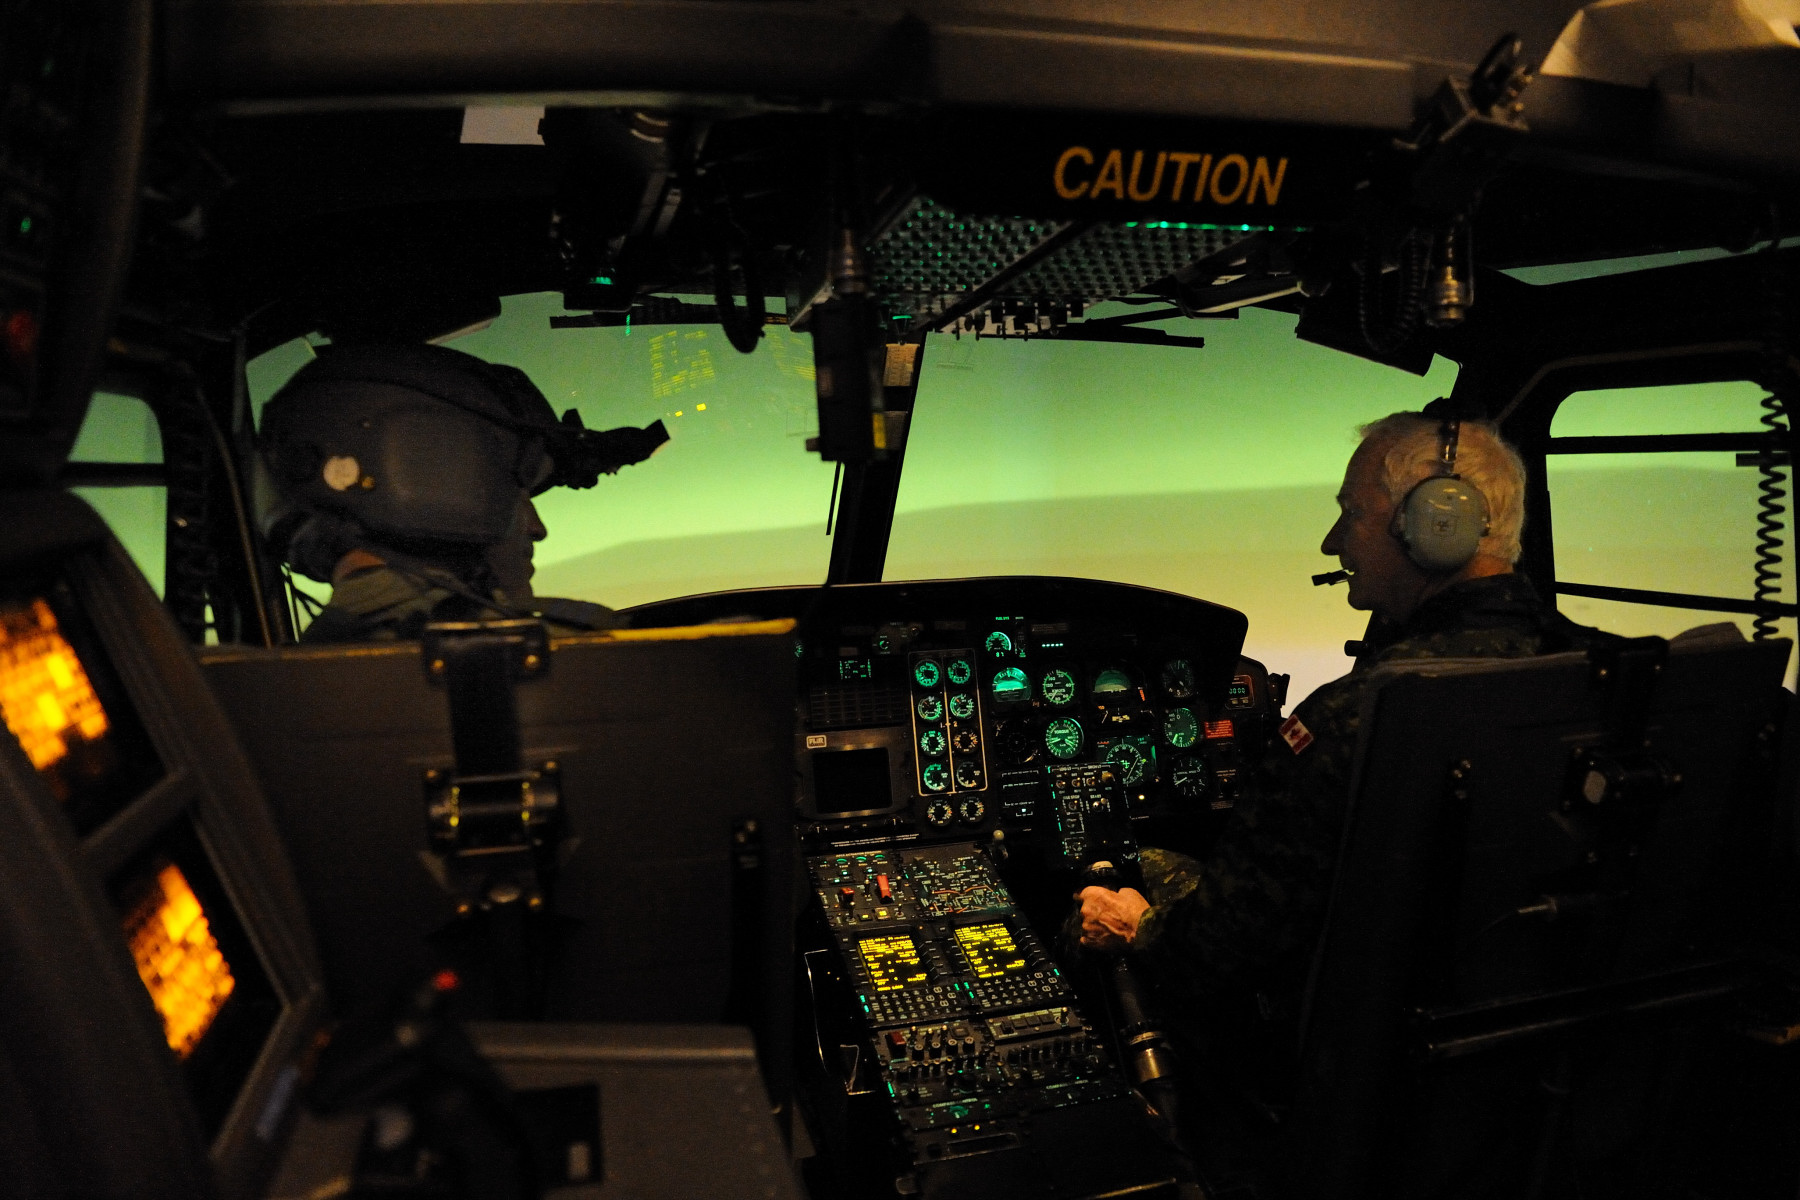 The Governor General also visited the 403 Squadron, where he had the opportunity to learn about the purpose of a simulator.